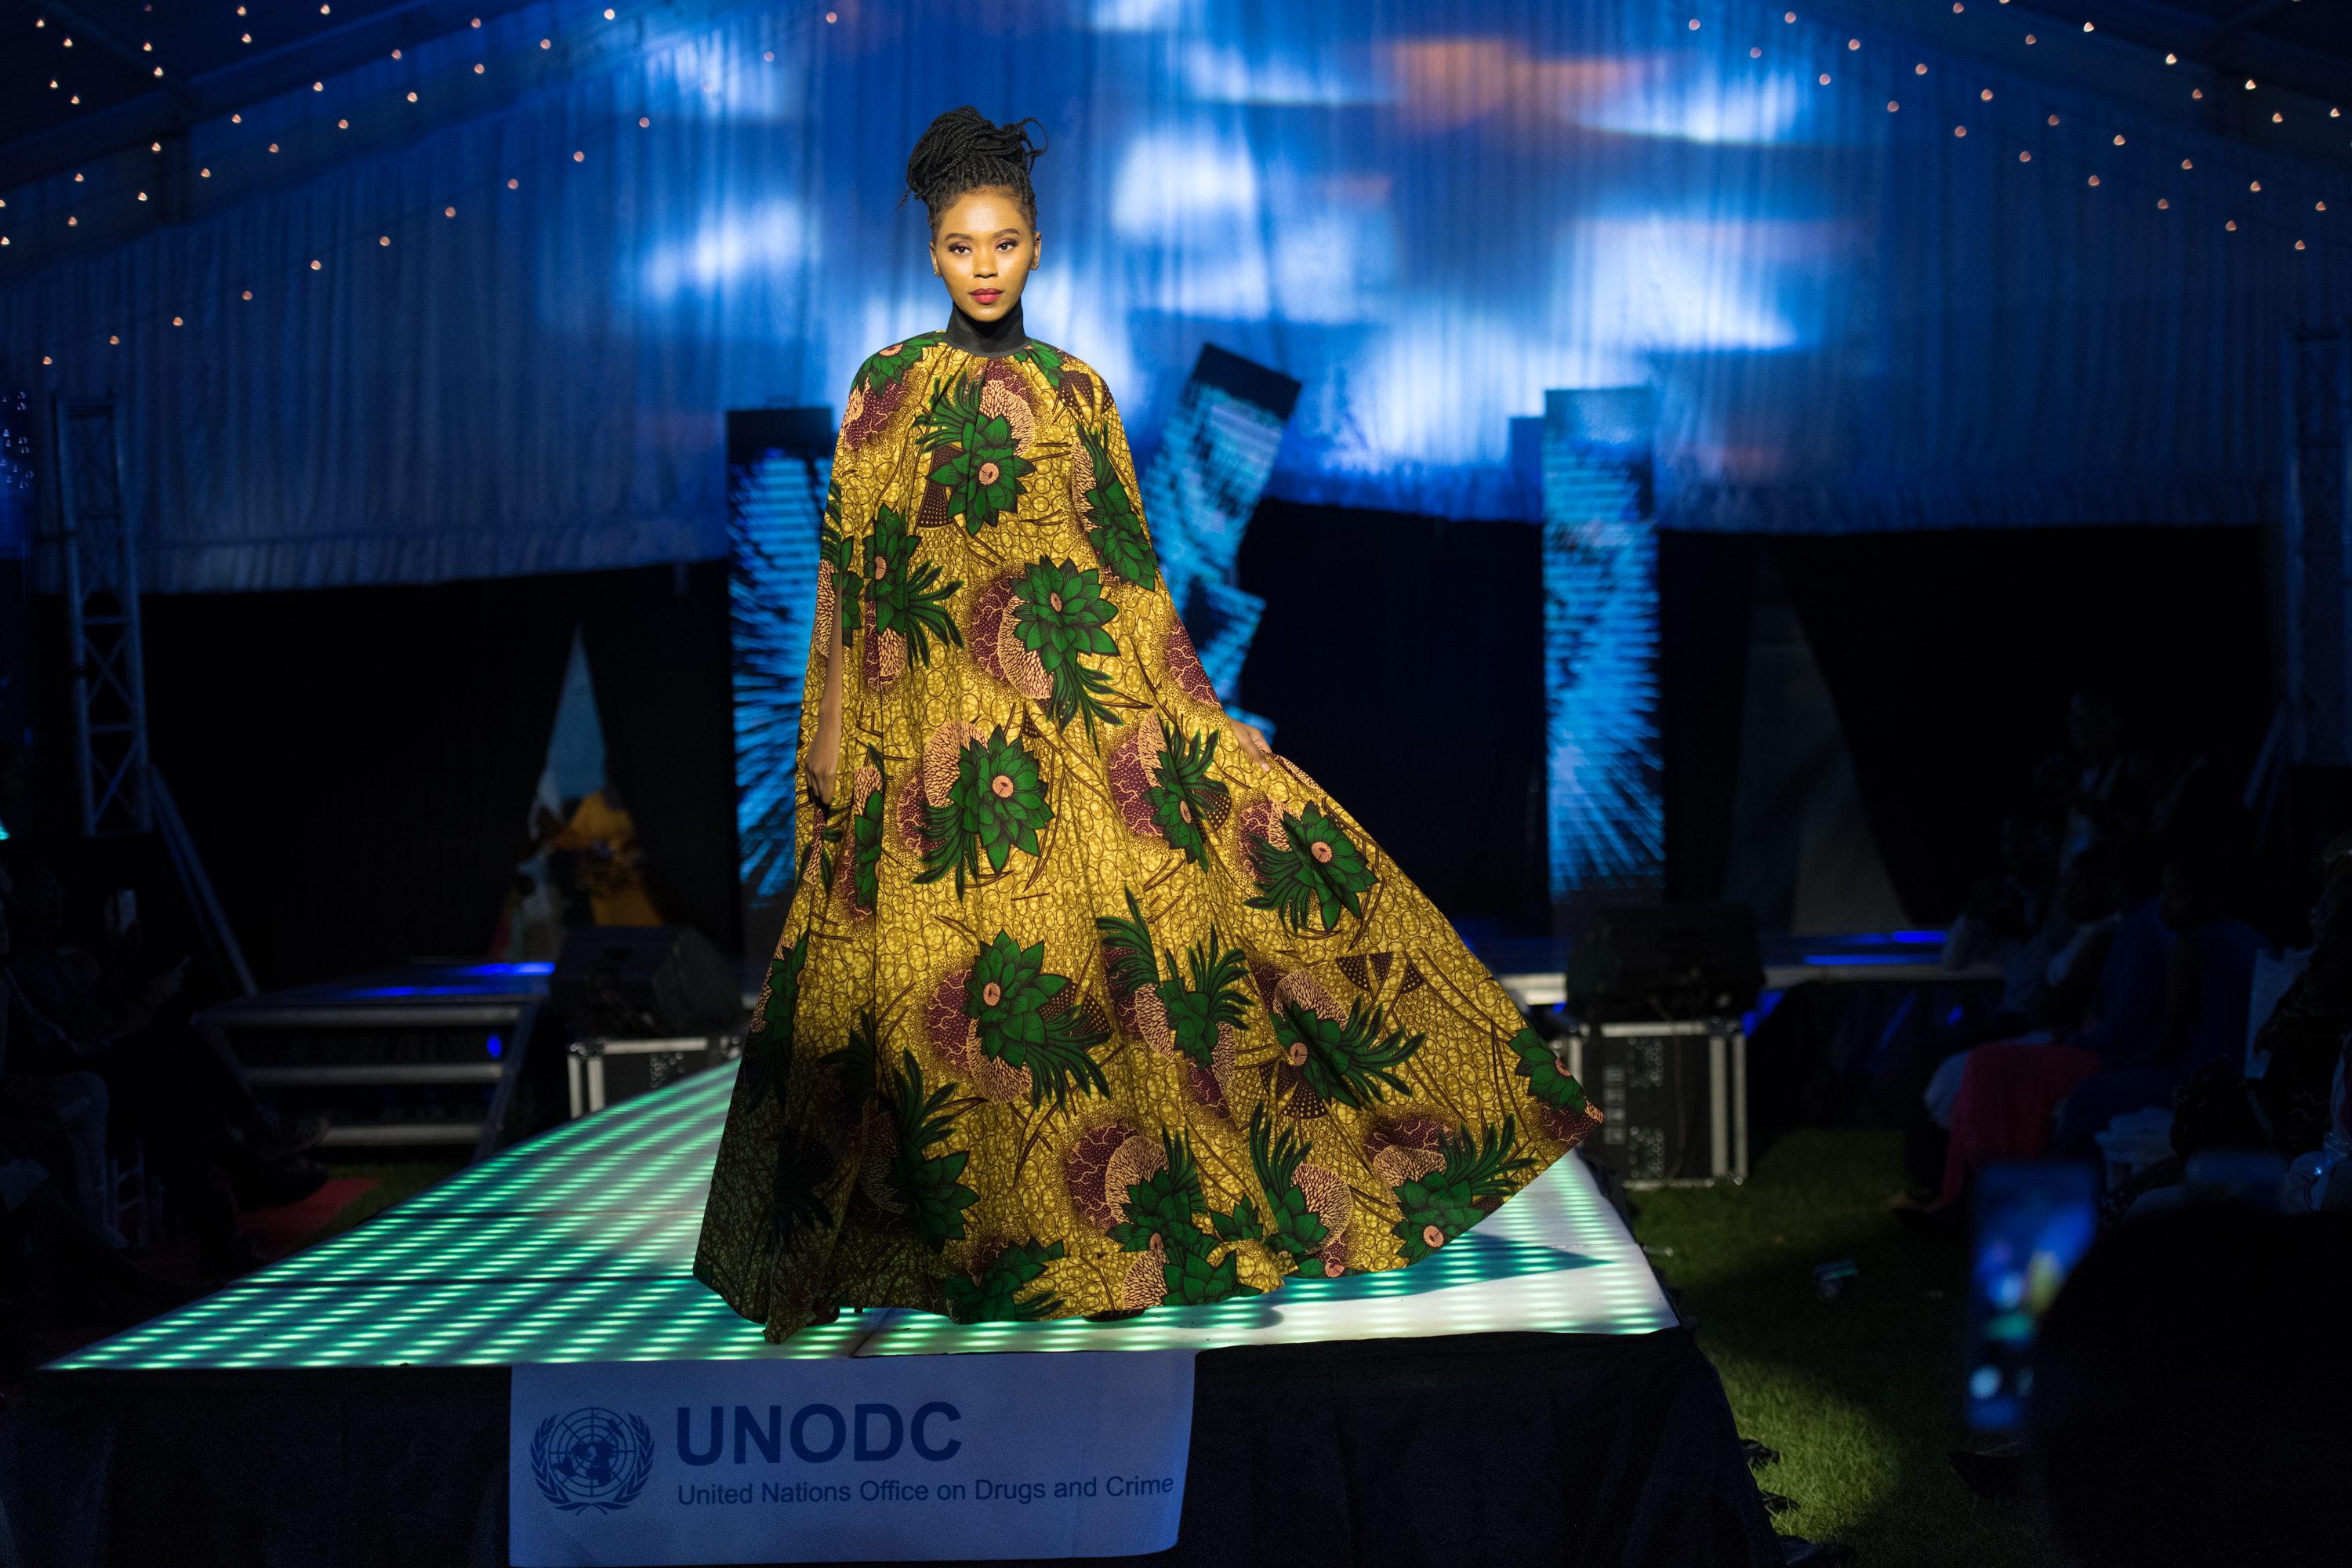 Unodc Roea Supports The Reintegration Of Girls In Conflict With The Law In Kenya Through Fashion